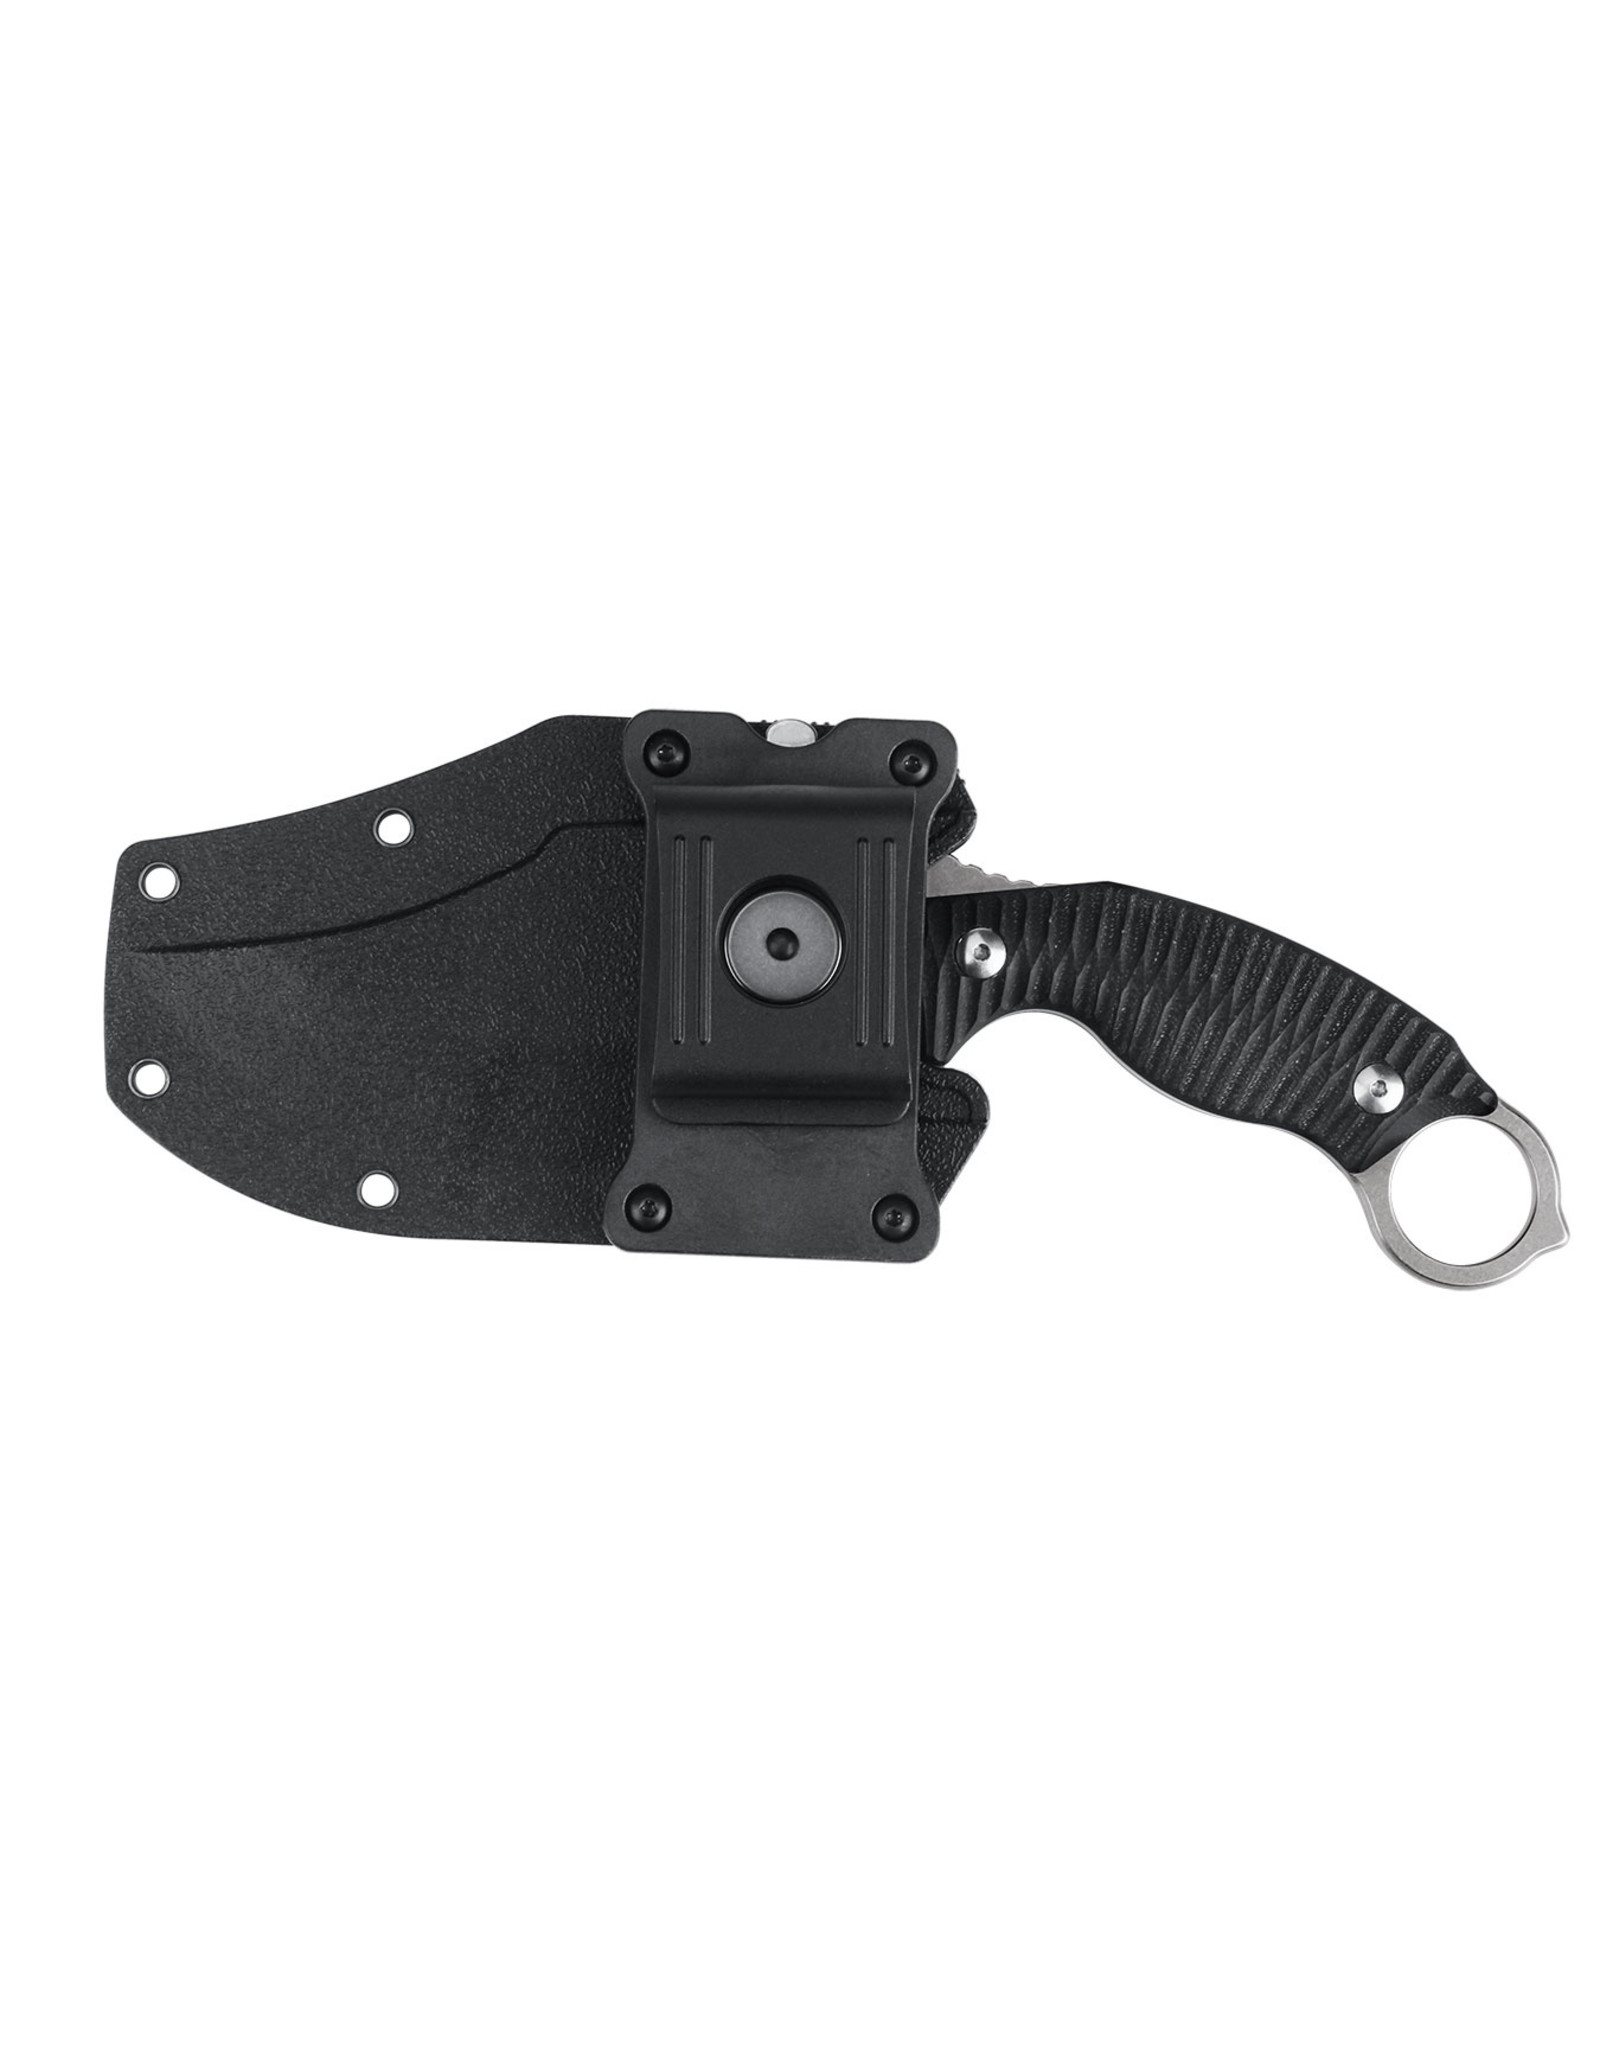 RUIKE KNIVES F181 FIXED BLADE